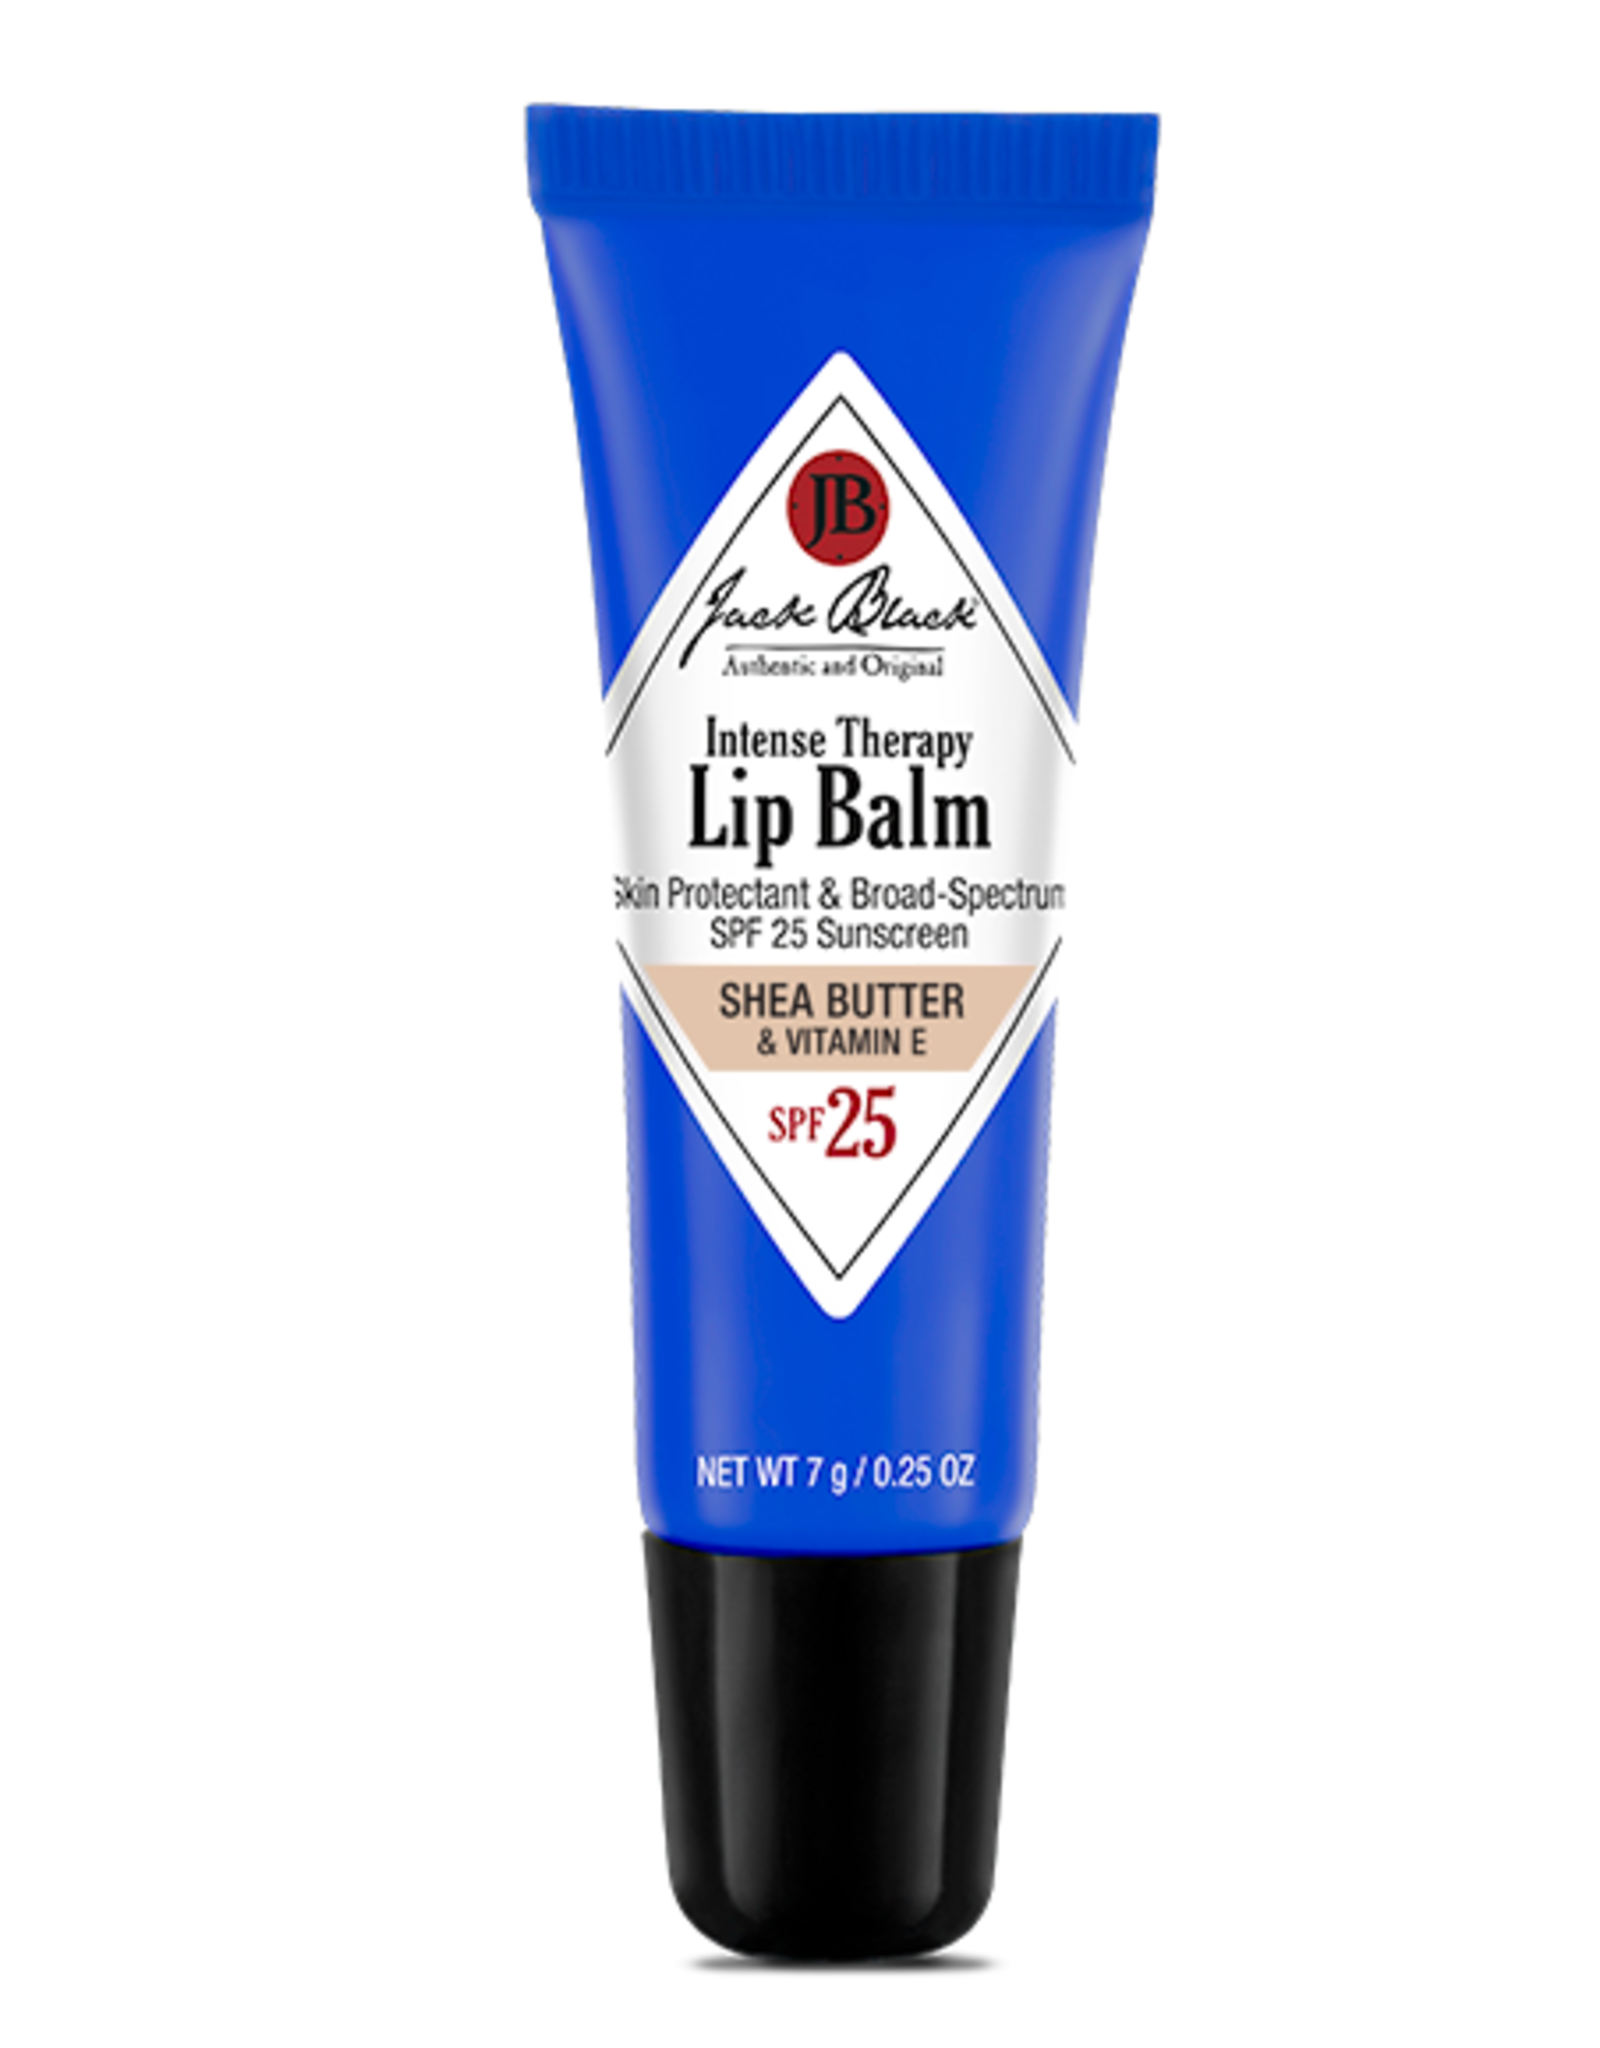 Jack Black Shea & Vitamin E Lip Balm by Jack Black